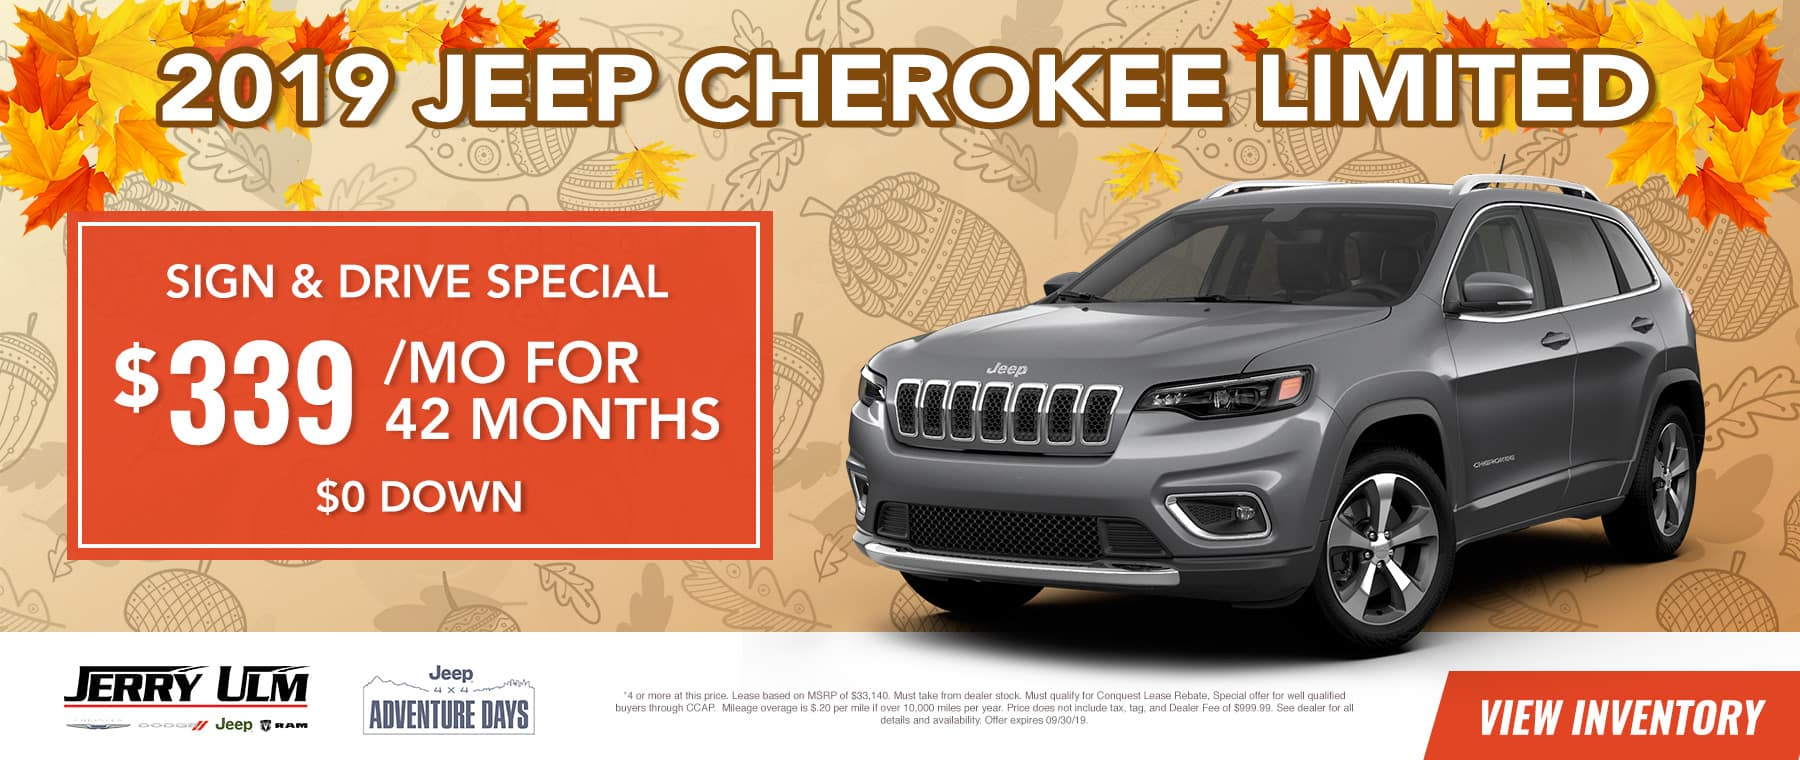 Jerry Ulm Chrysler Dodge Jeep Ram is your Tampa Car Dealership!